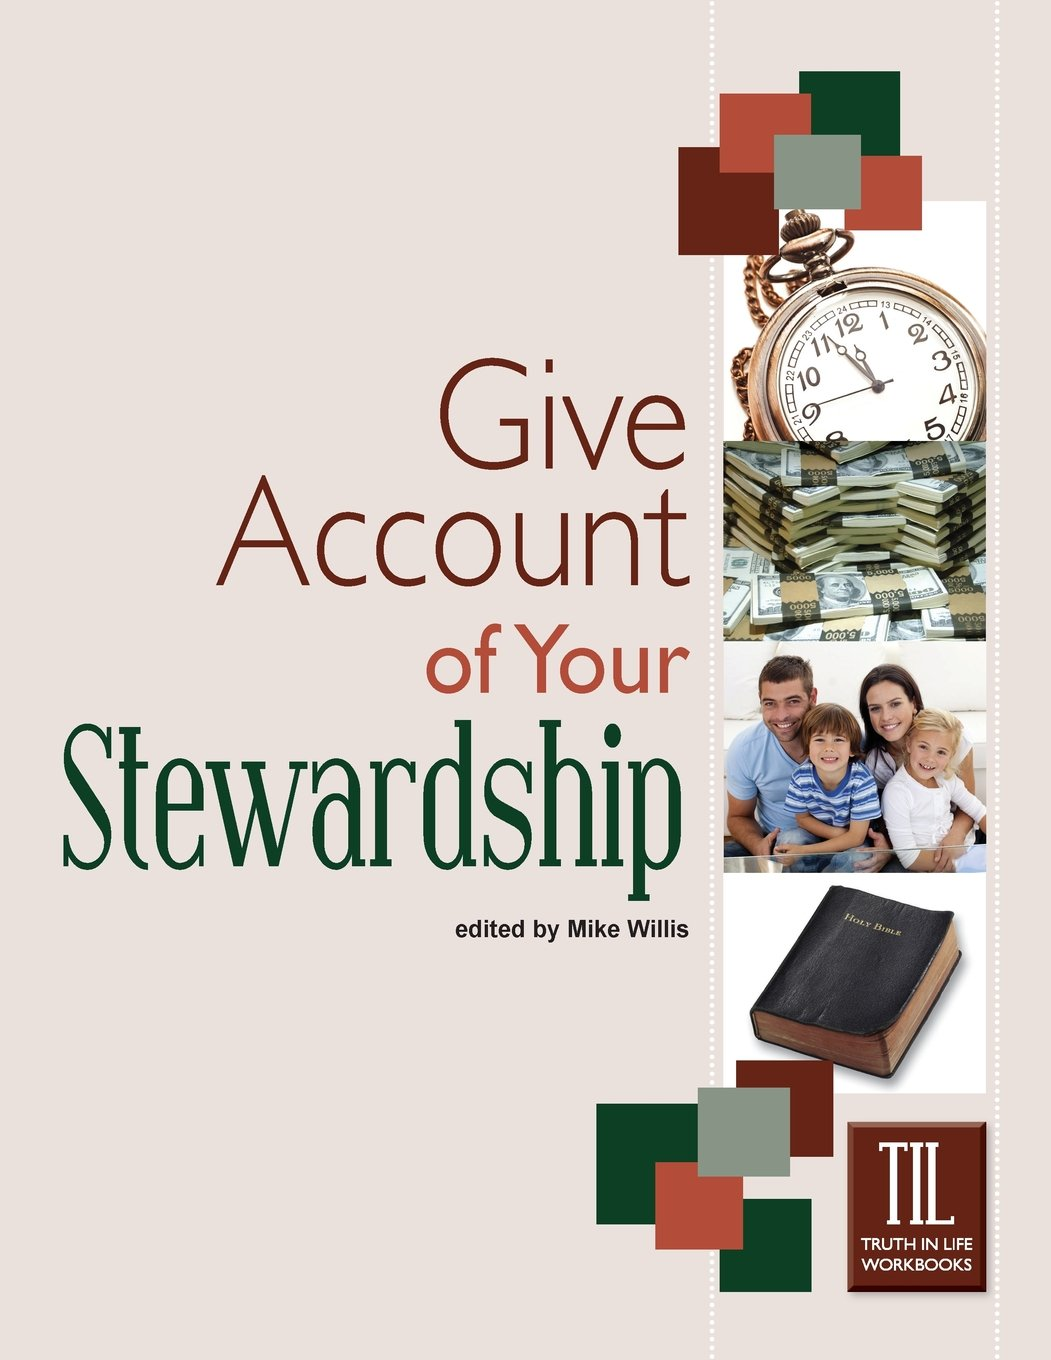 give-account-of-your-stewardship.jpg